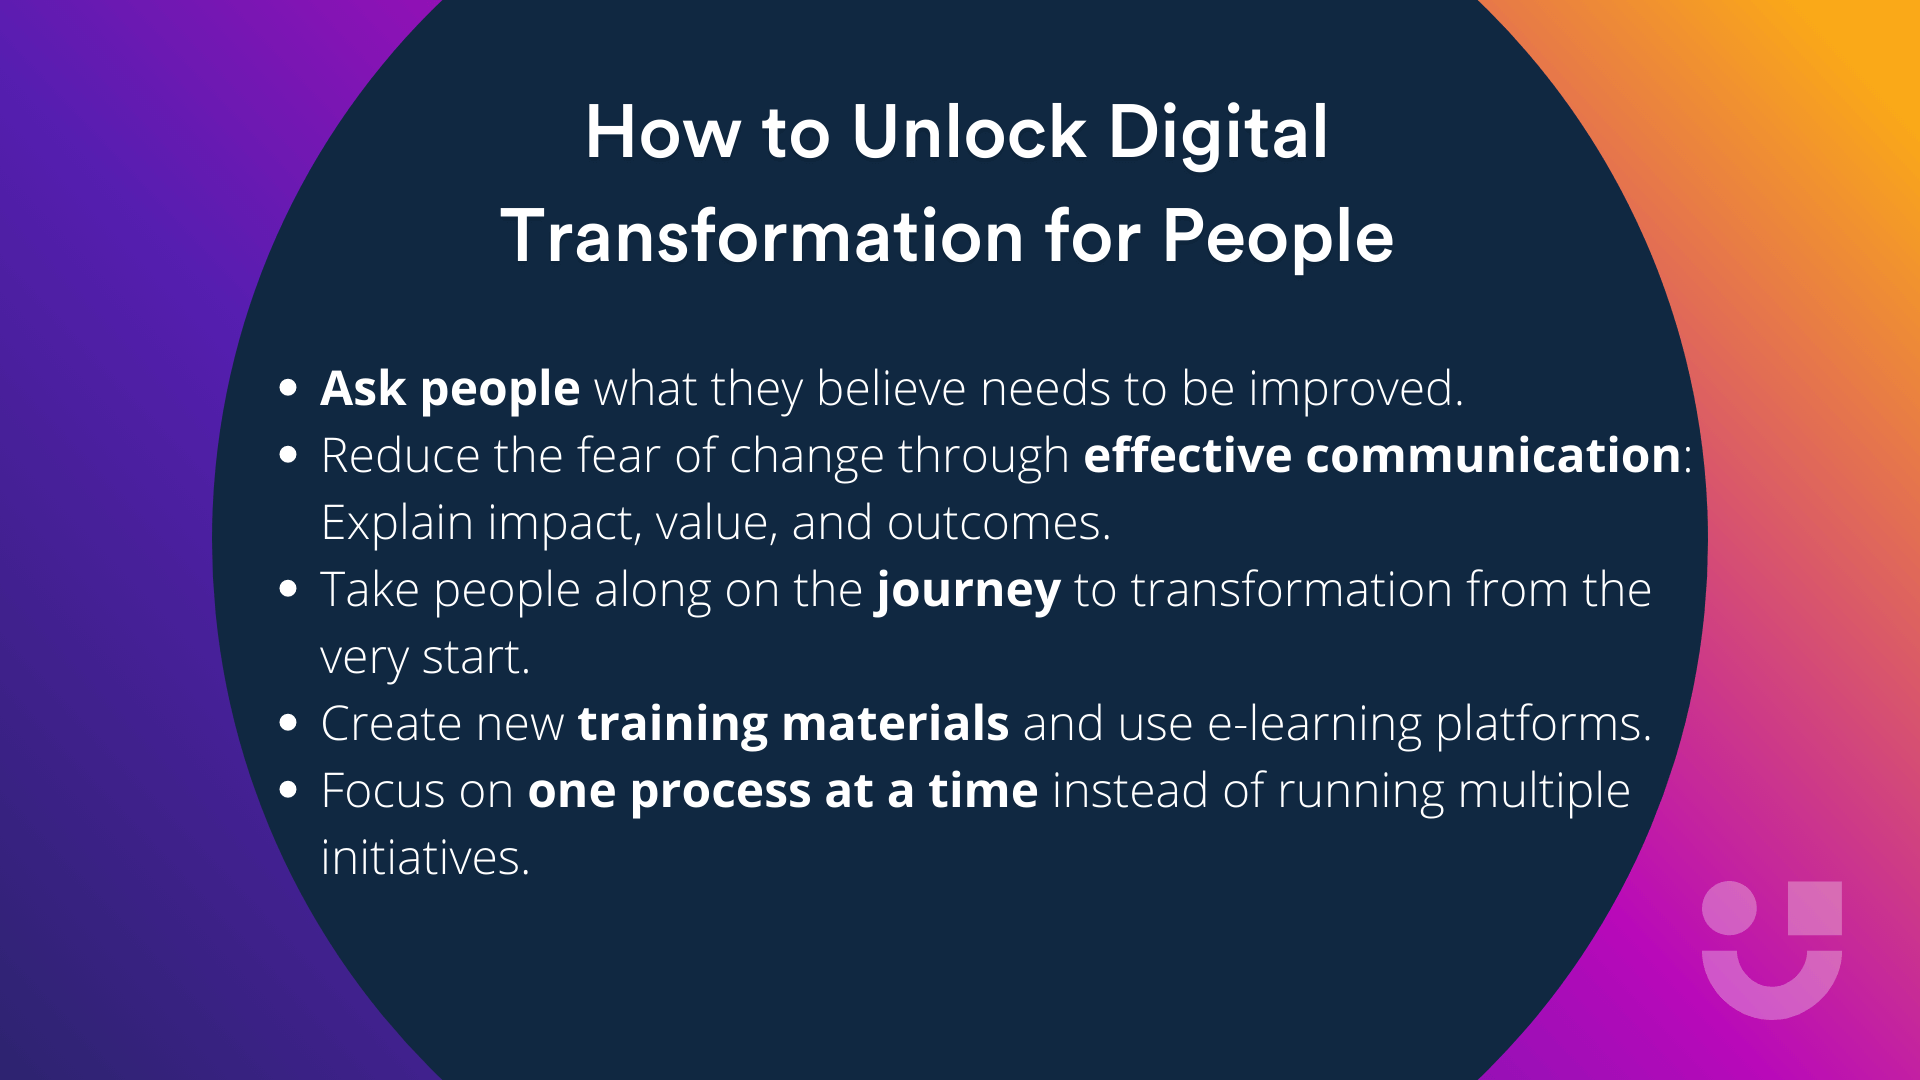 key takeaways on how to unlock digital transformation for people written in white on a navy blue background